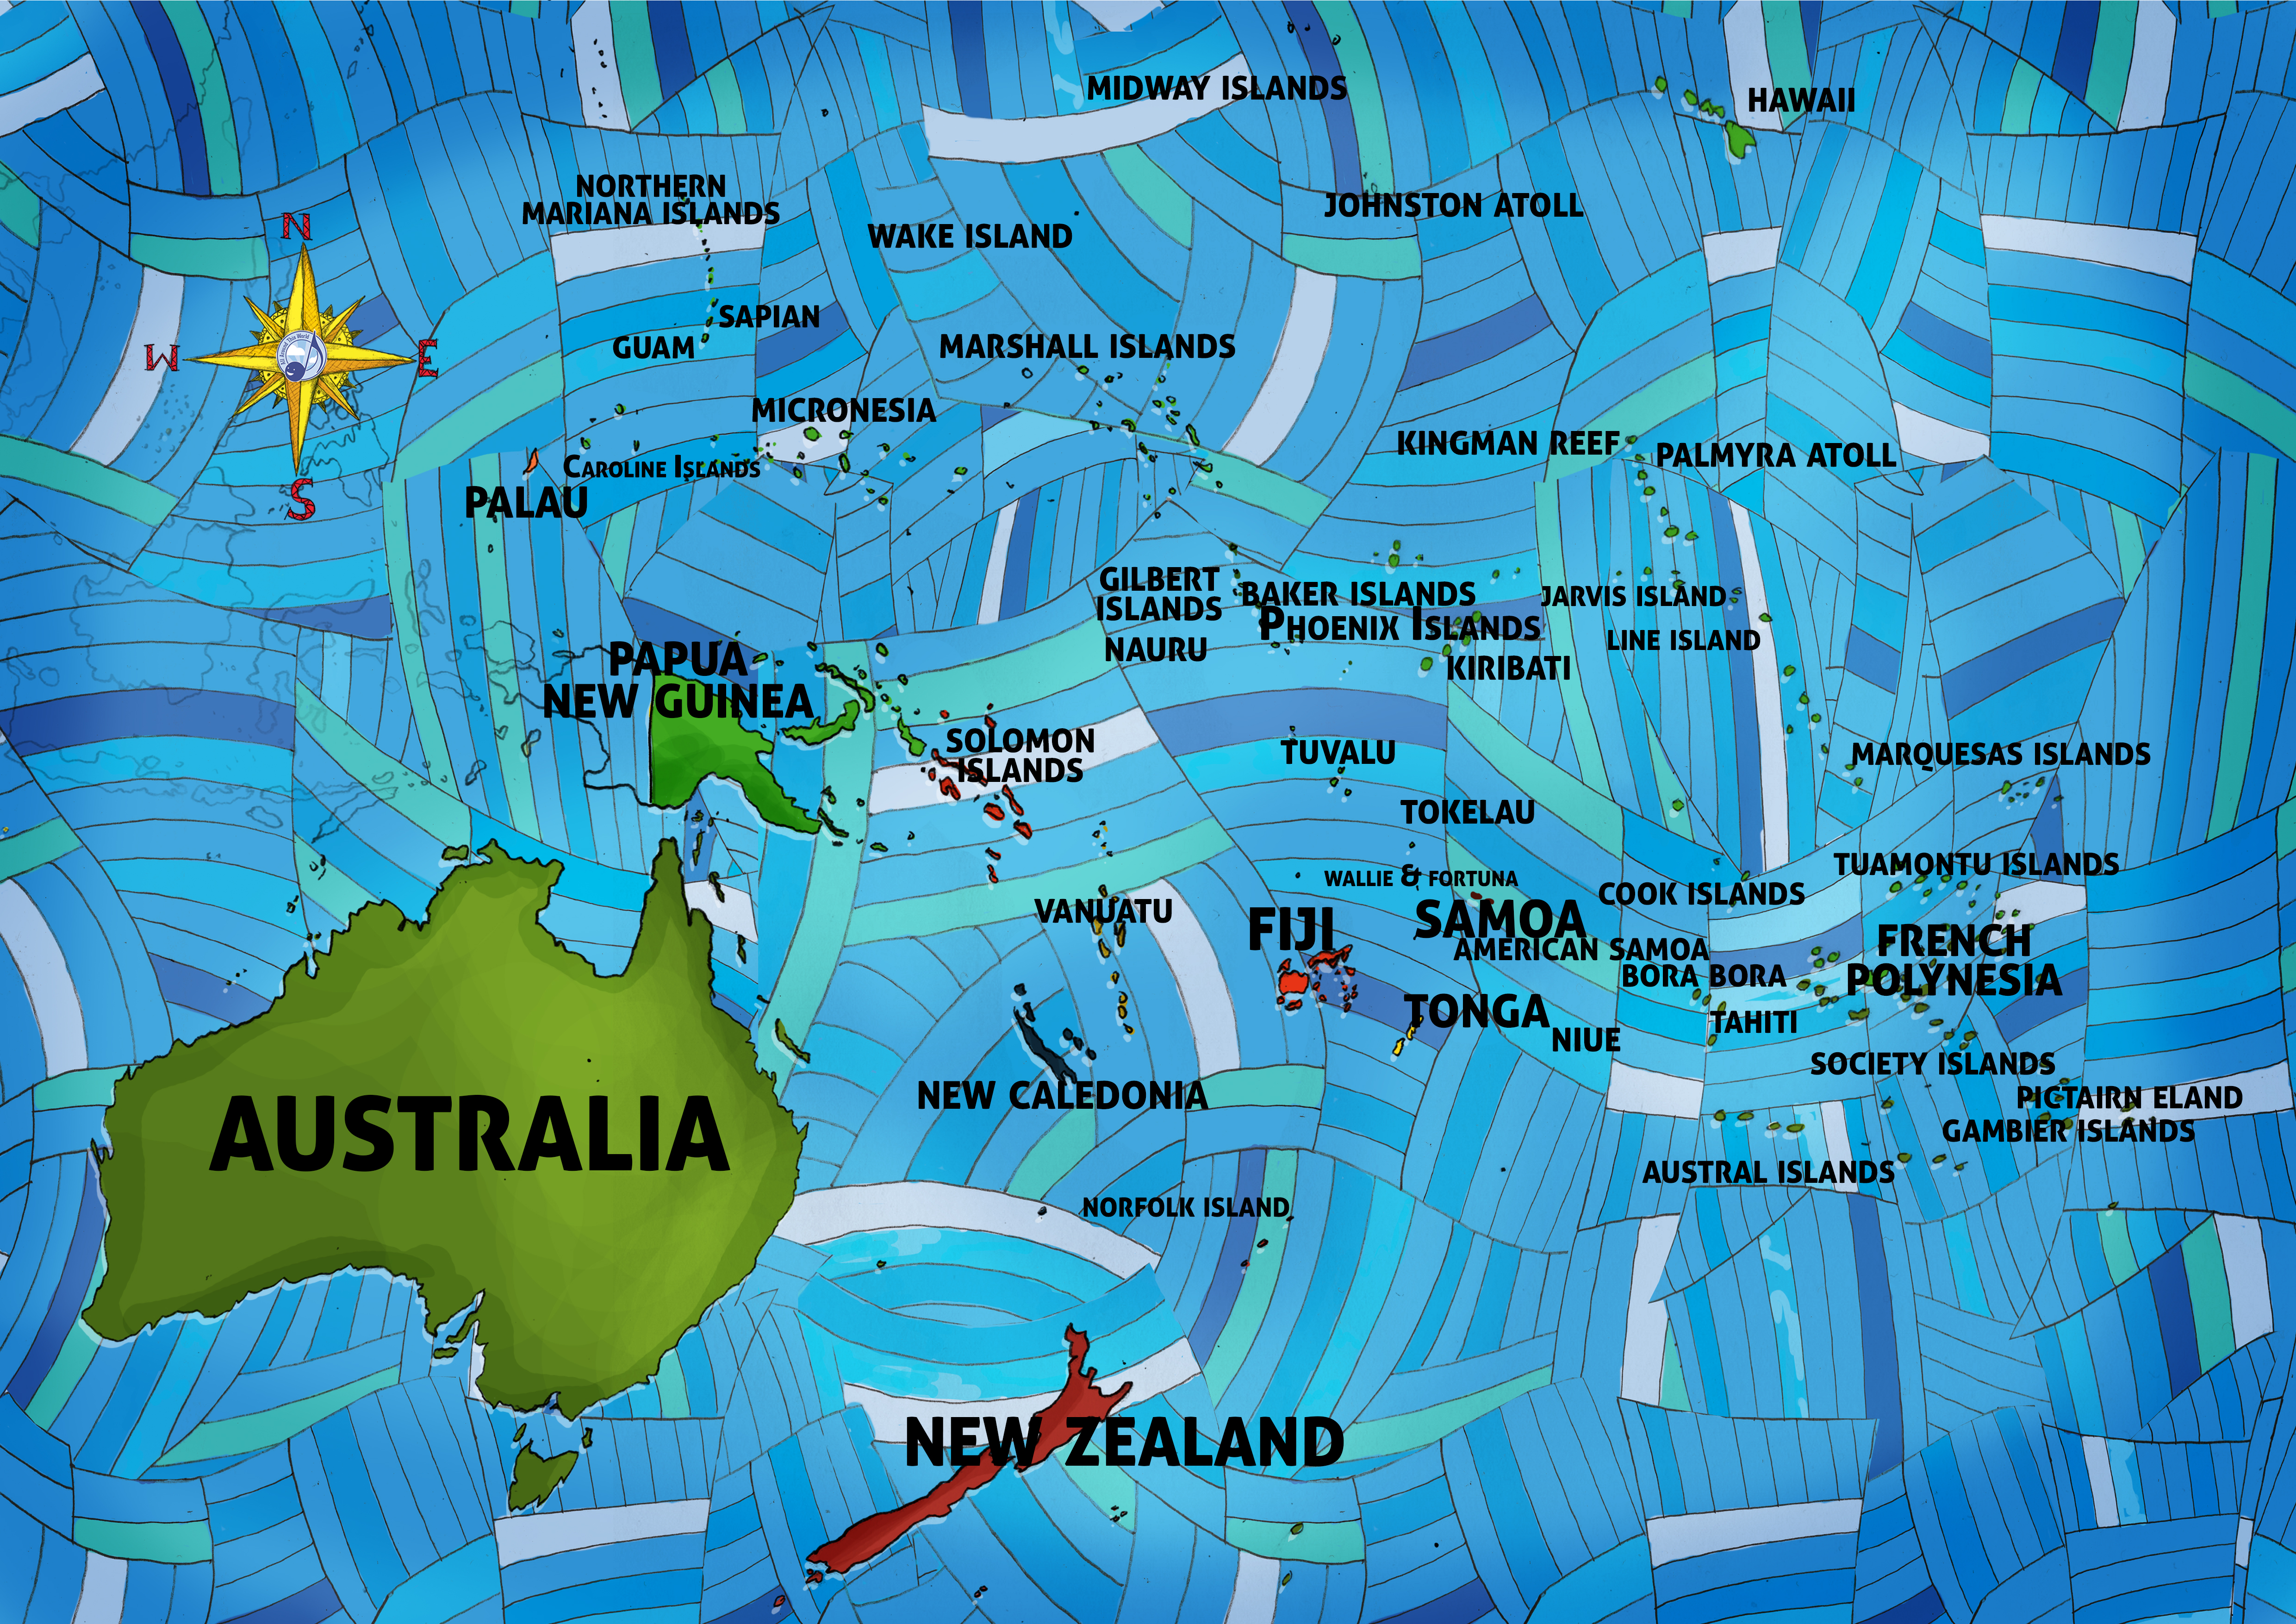 All Around This World Oceania and the Pacific Islands